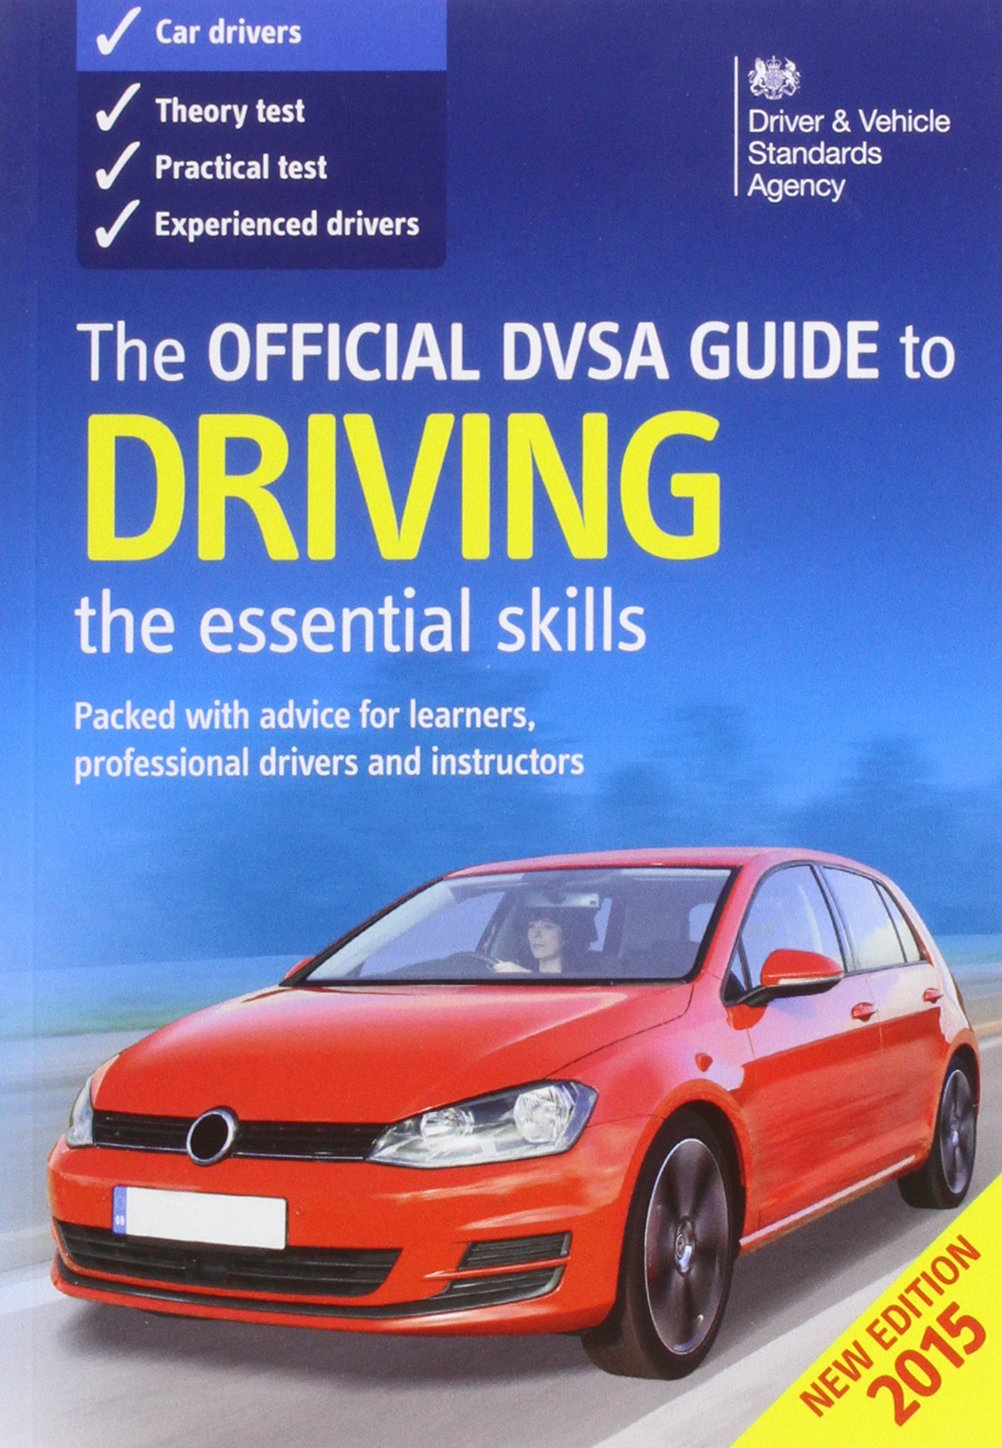 The Official Dvsa Guide To Driving 2015: The Essential Skills:  Amazon: Driver And Vehicle Standards Agency: 9780115532900: Books